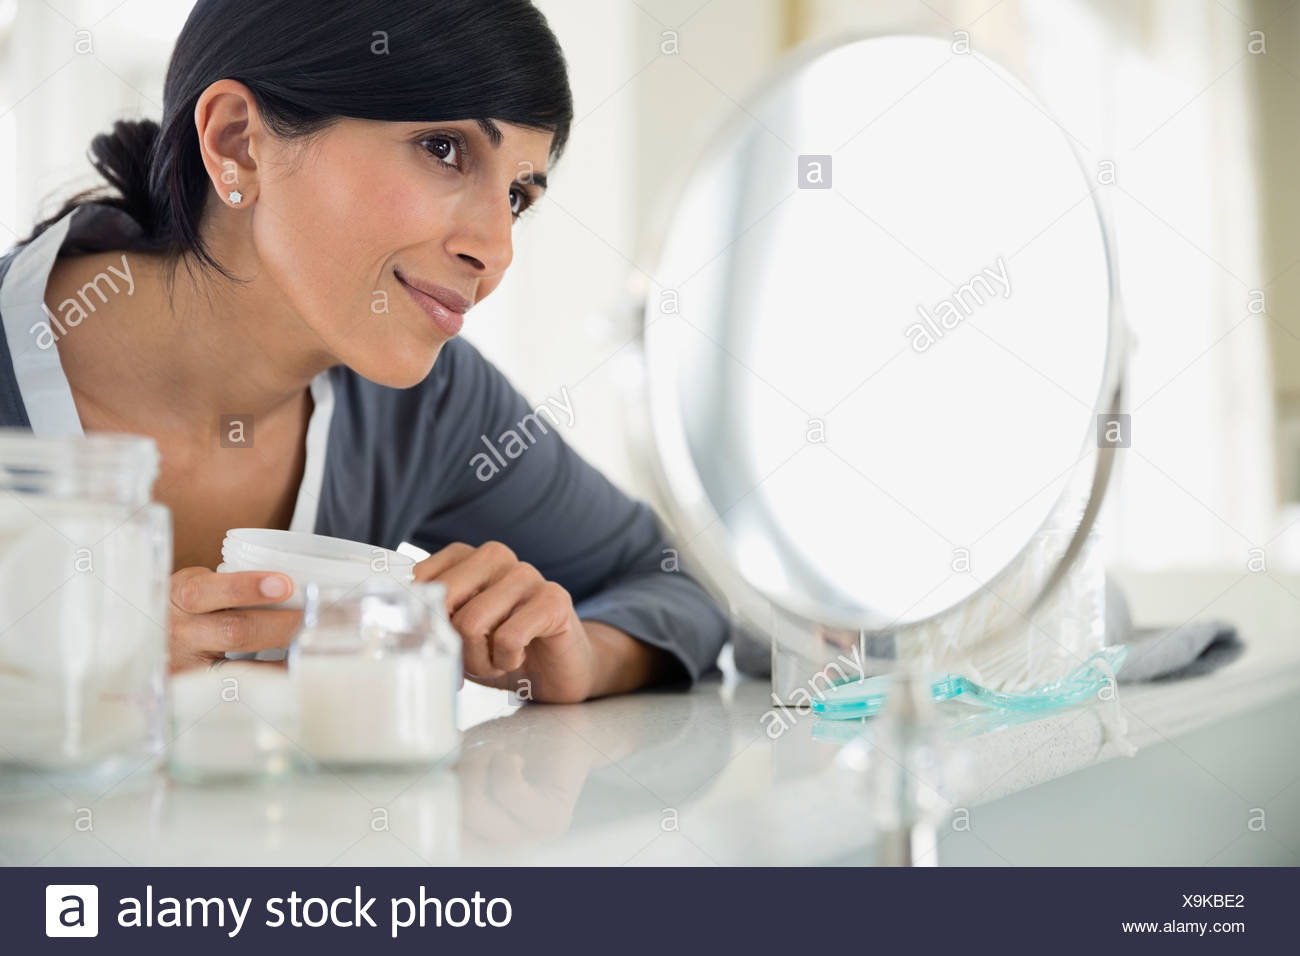 Beautiful woman holding cream bottle while looking in mirror at dressing table - Stock Image